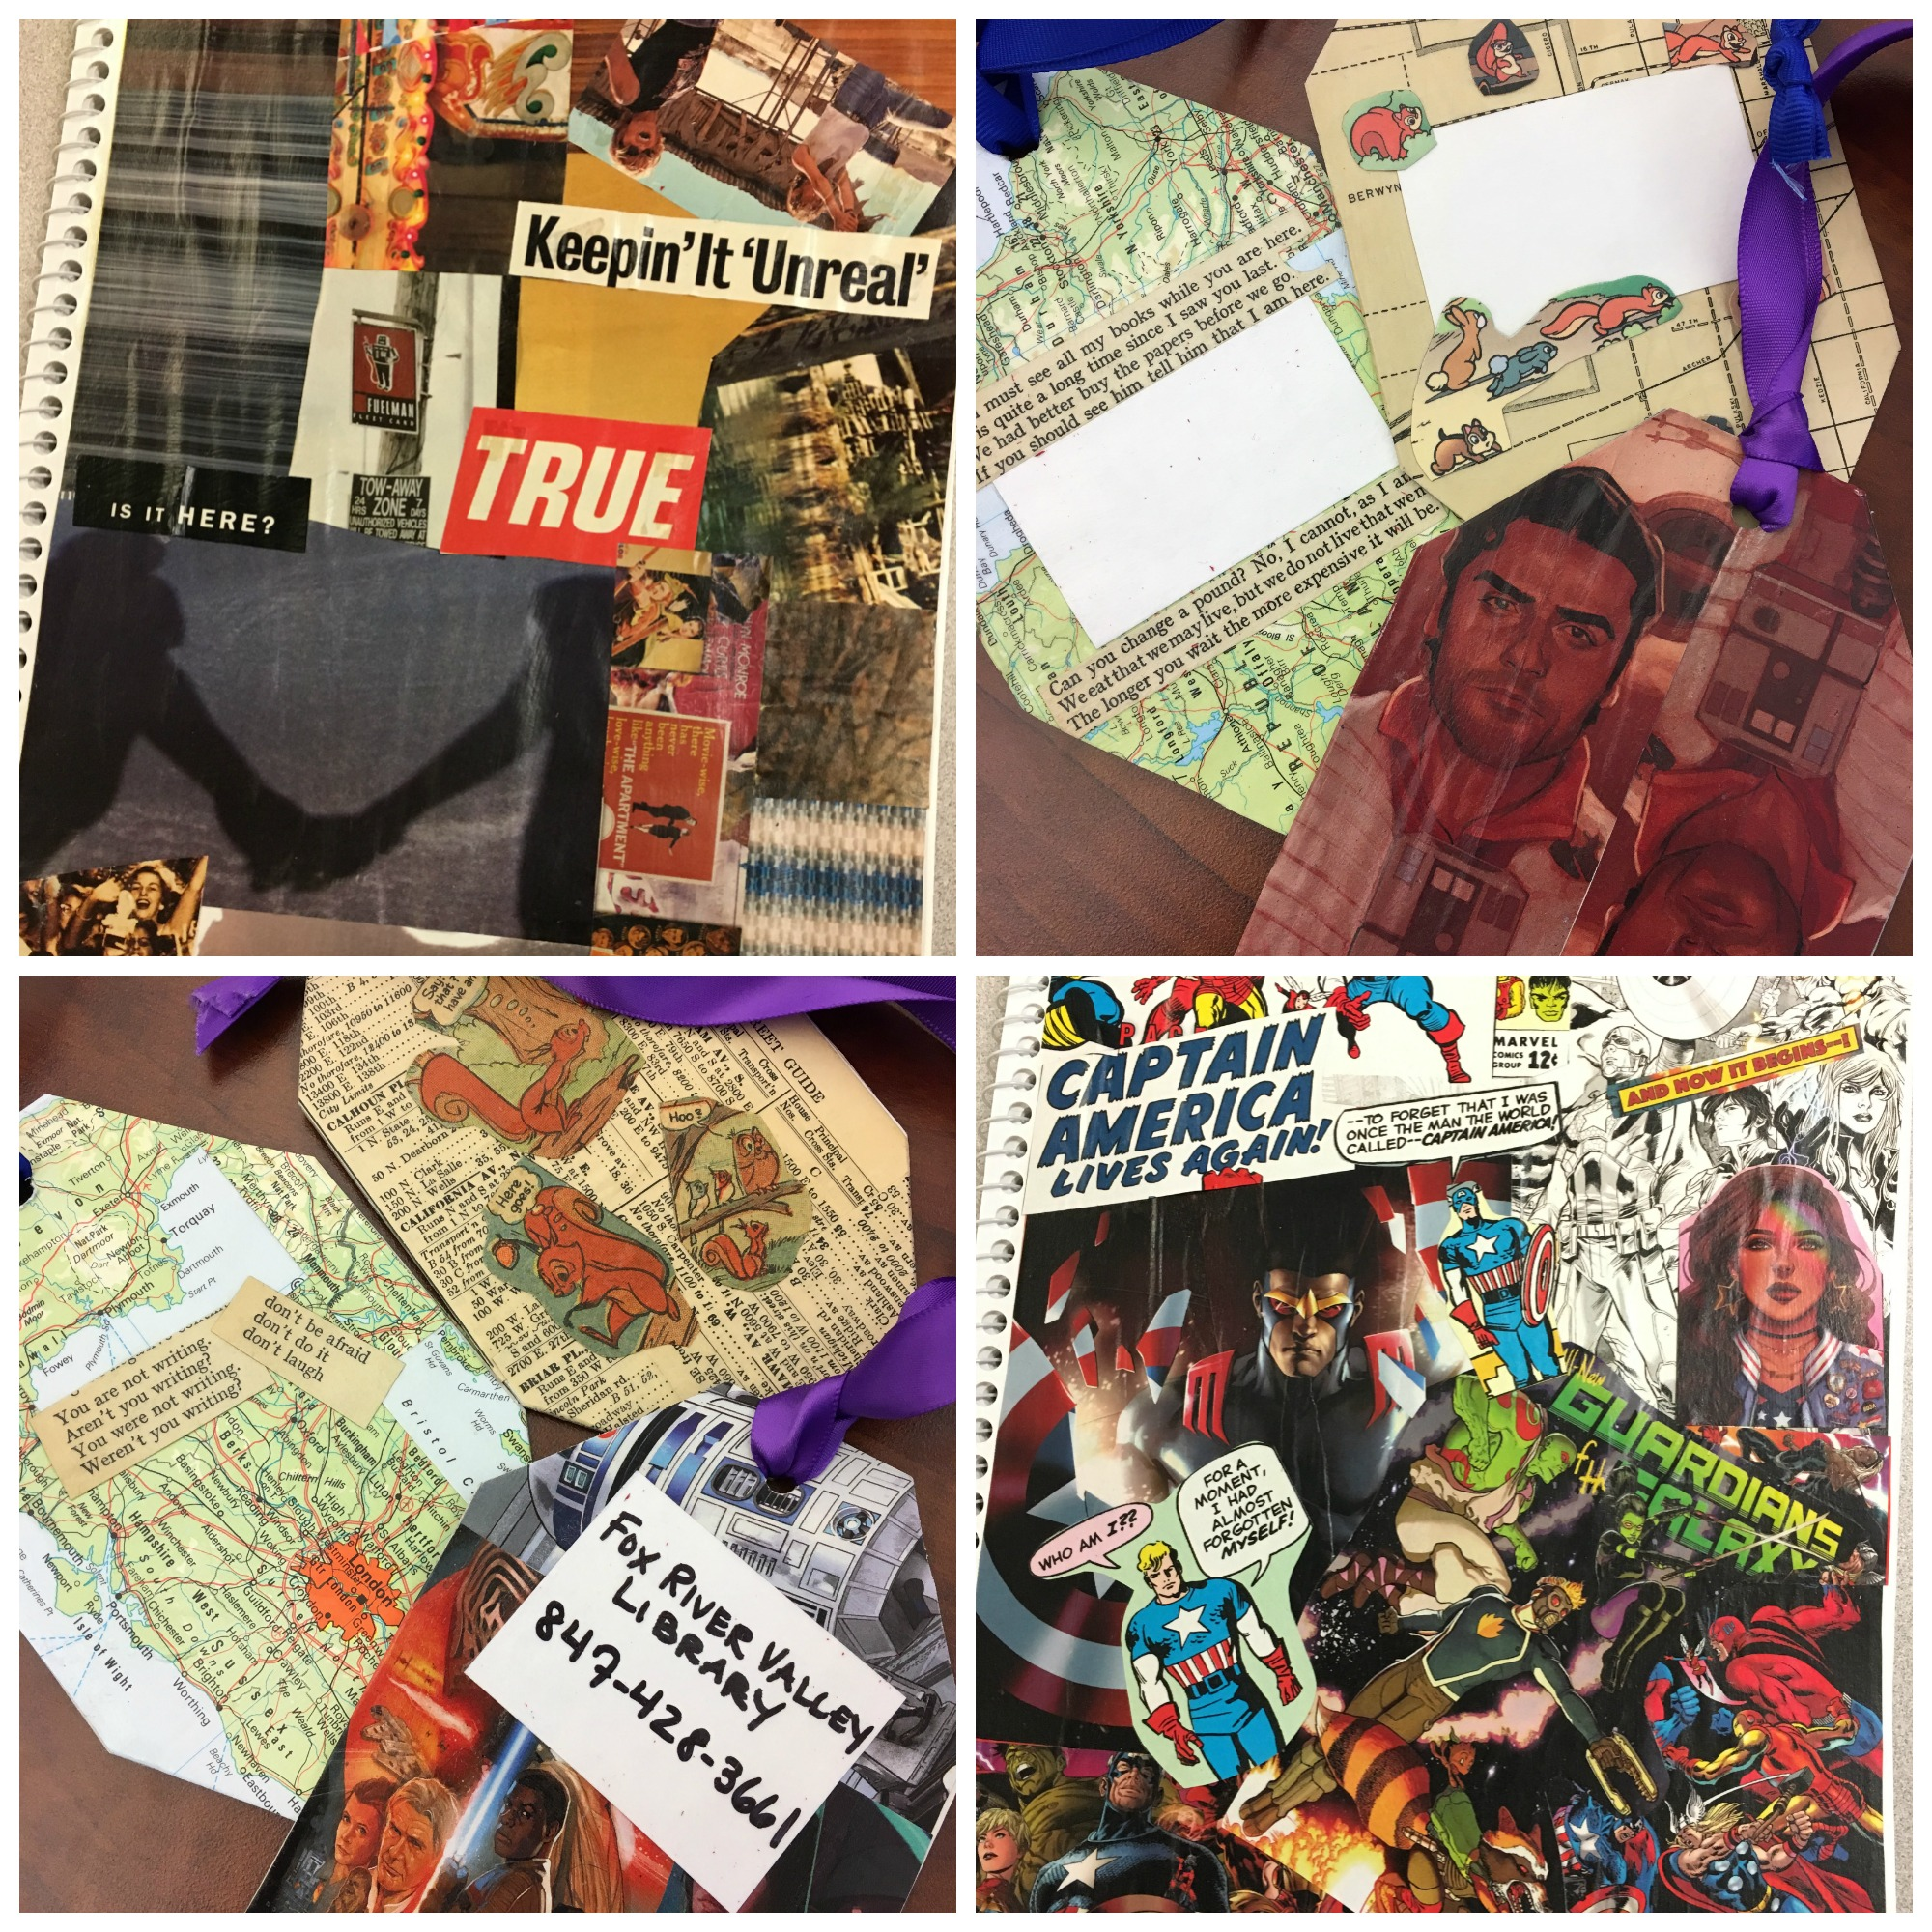 Decoupage notebook made from magazine cut outs, luggage tag examples made from maps, Chicago Street Guide, and Star Wars comic; notebook made from comic book pages